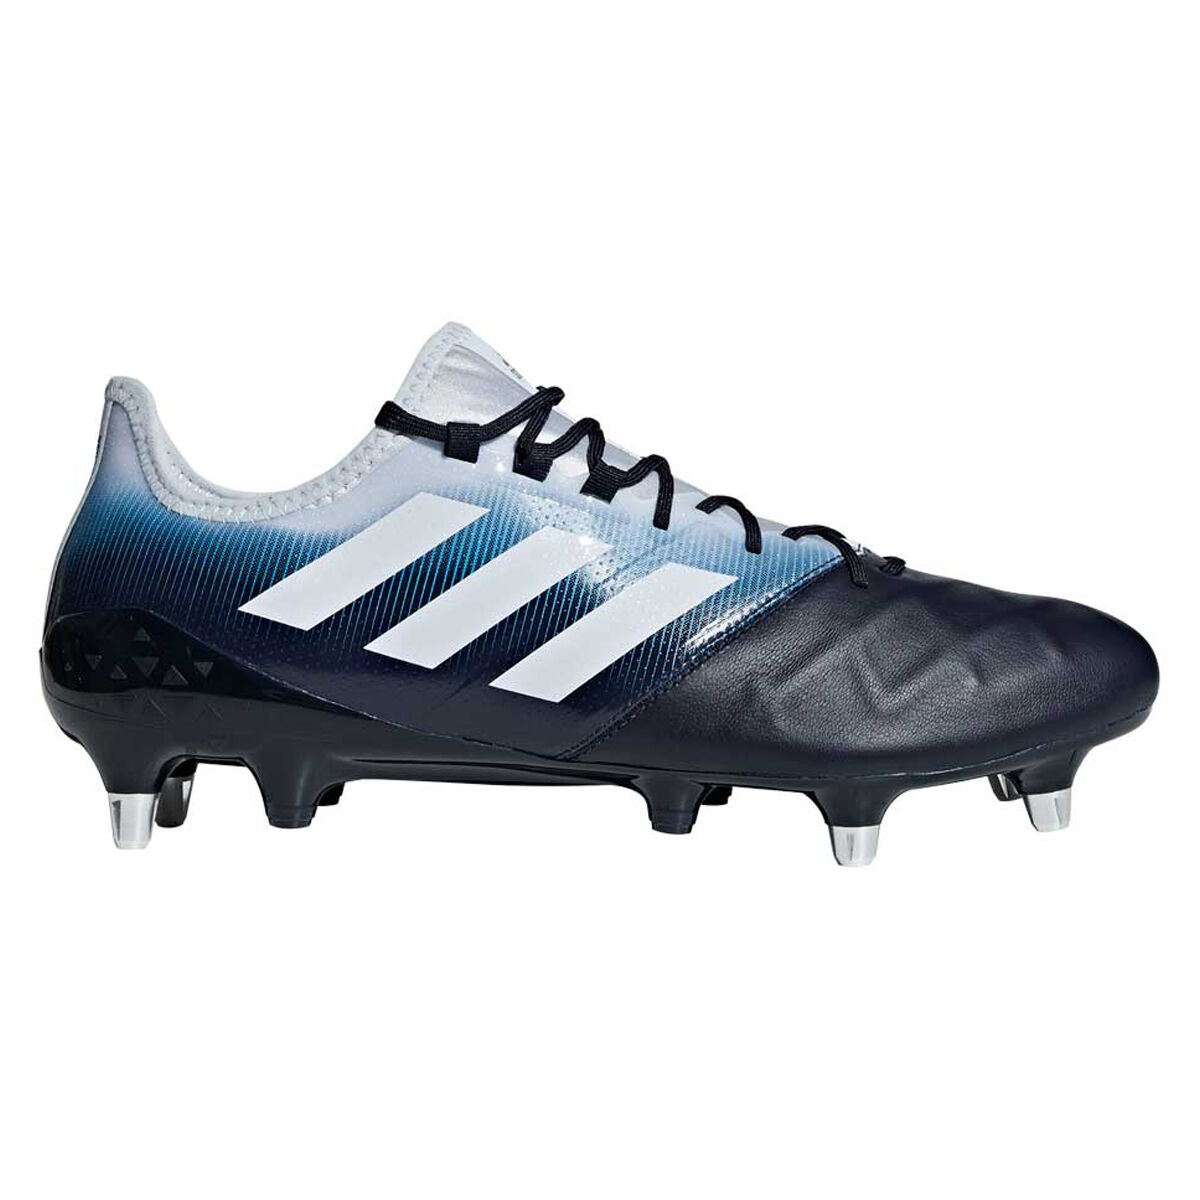 adidas Kakari Light SG Rugby Boots Grey Blue US Mens 12 Womens 13